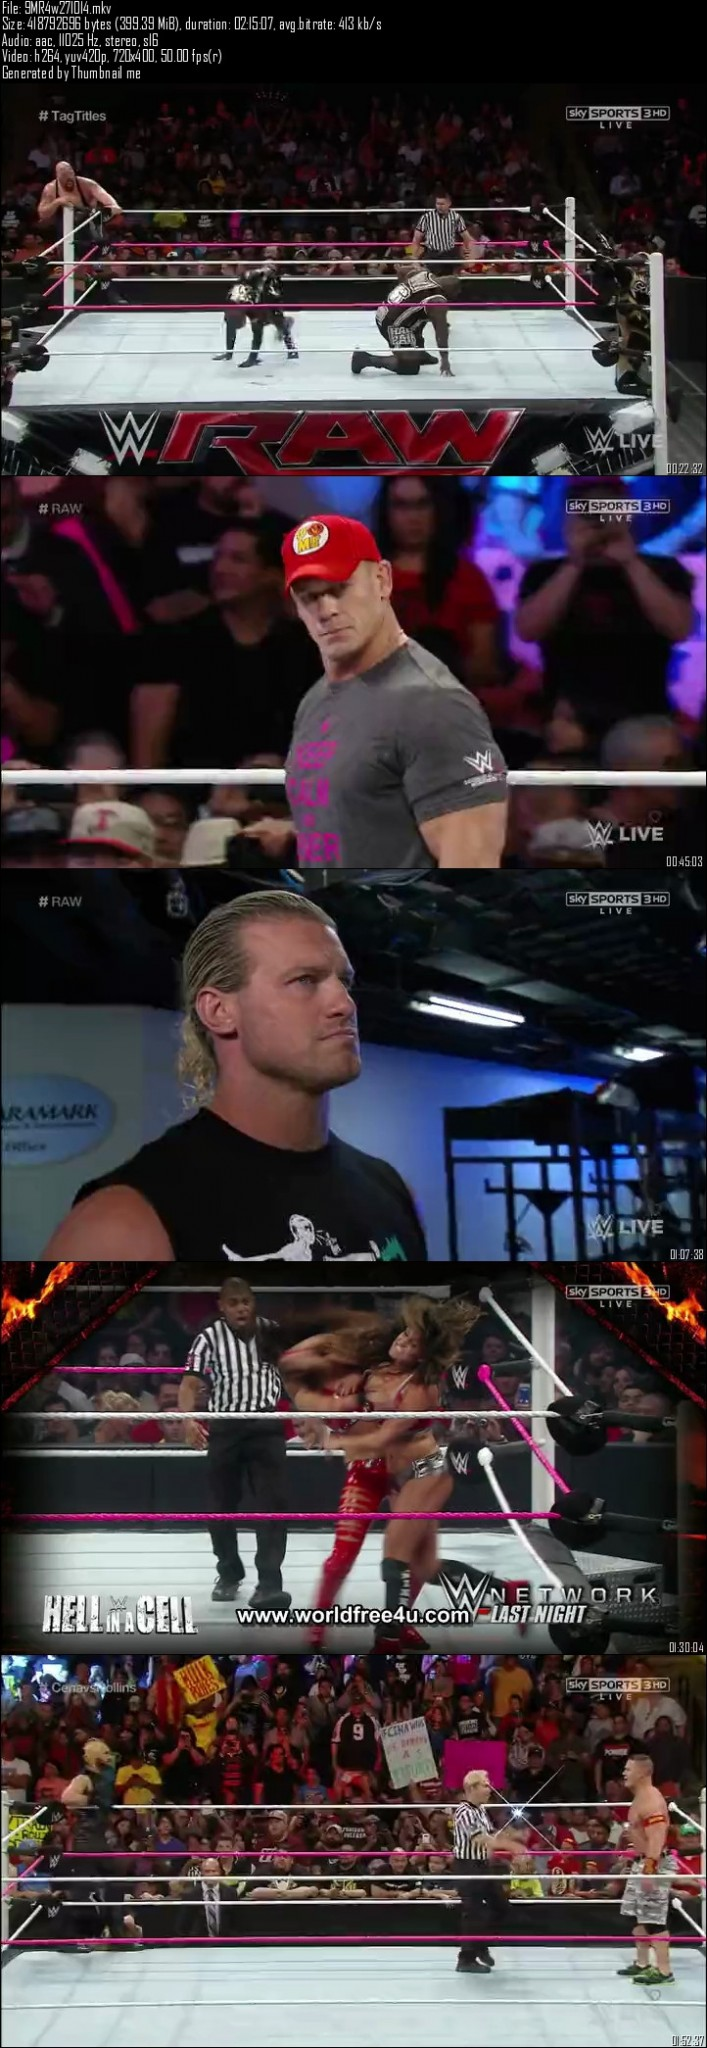 WWE Monday Night Raw 27th October (2014)